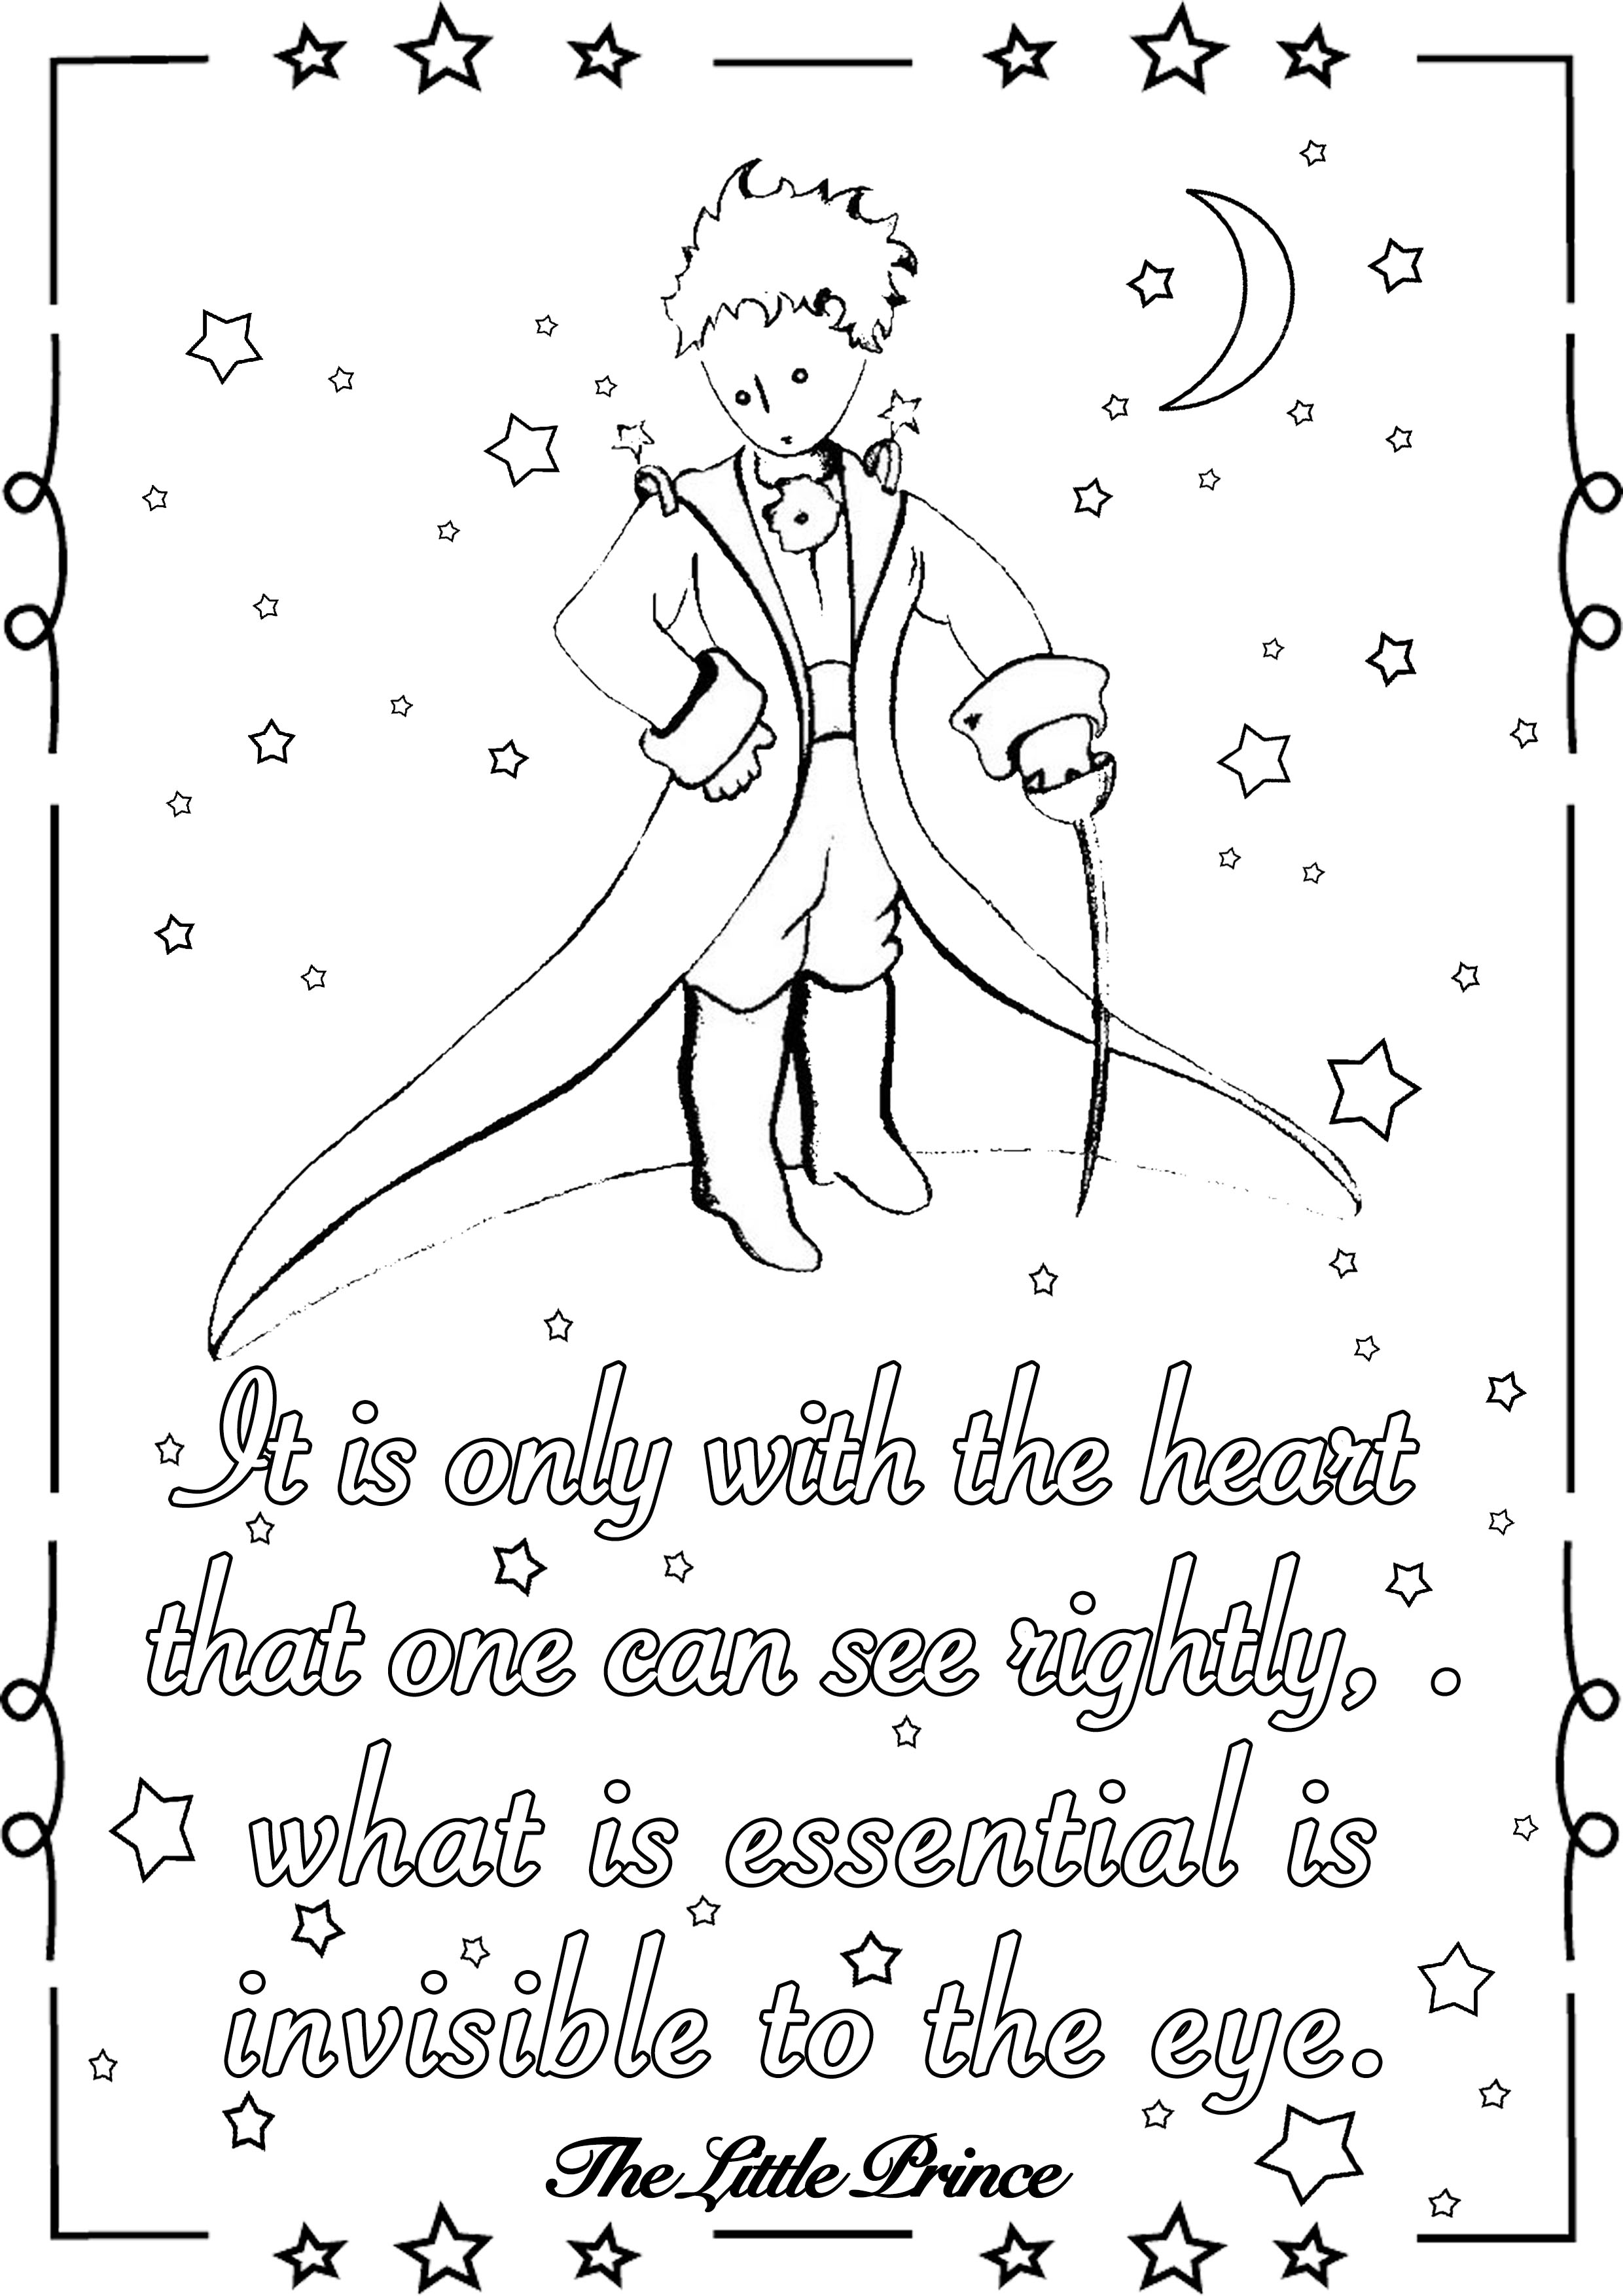 It is only in the heart that one can see rightly; what is essential is invisible to the eye. - The Little Prince (Antoine de Saint-Exupéry)